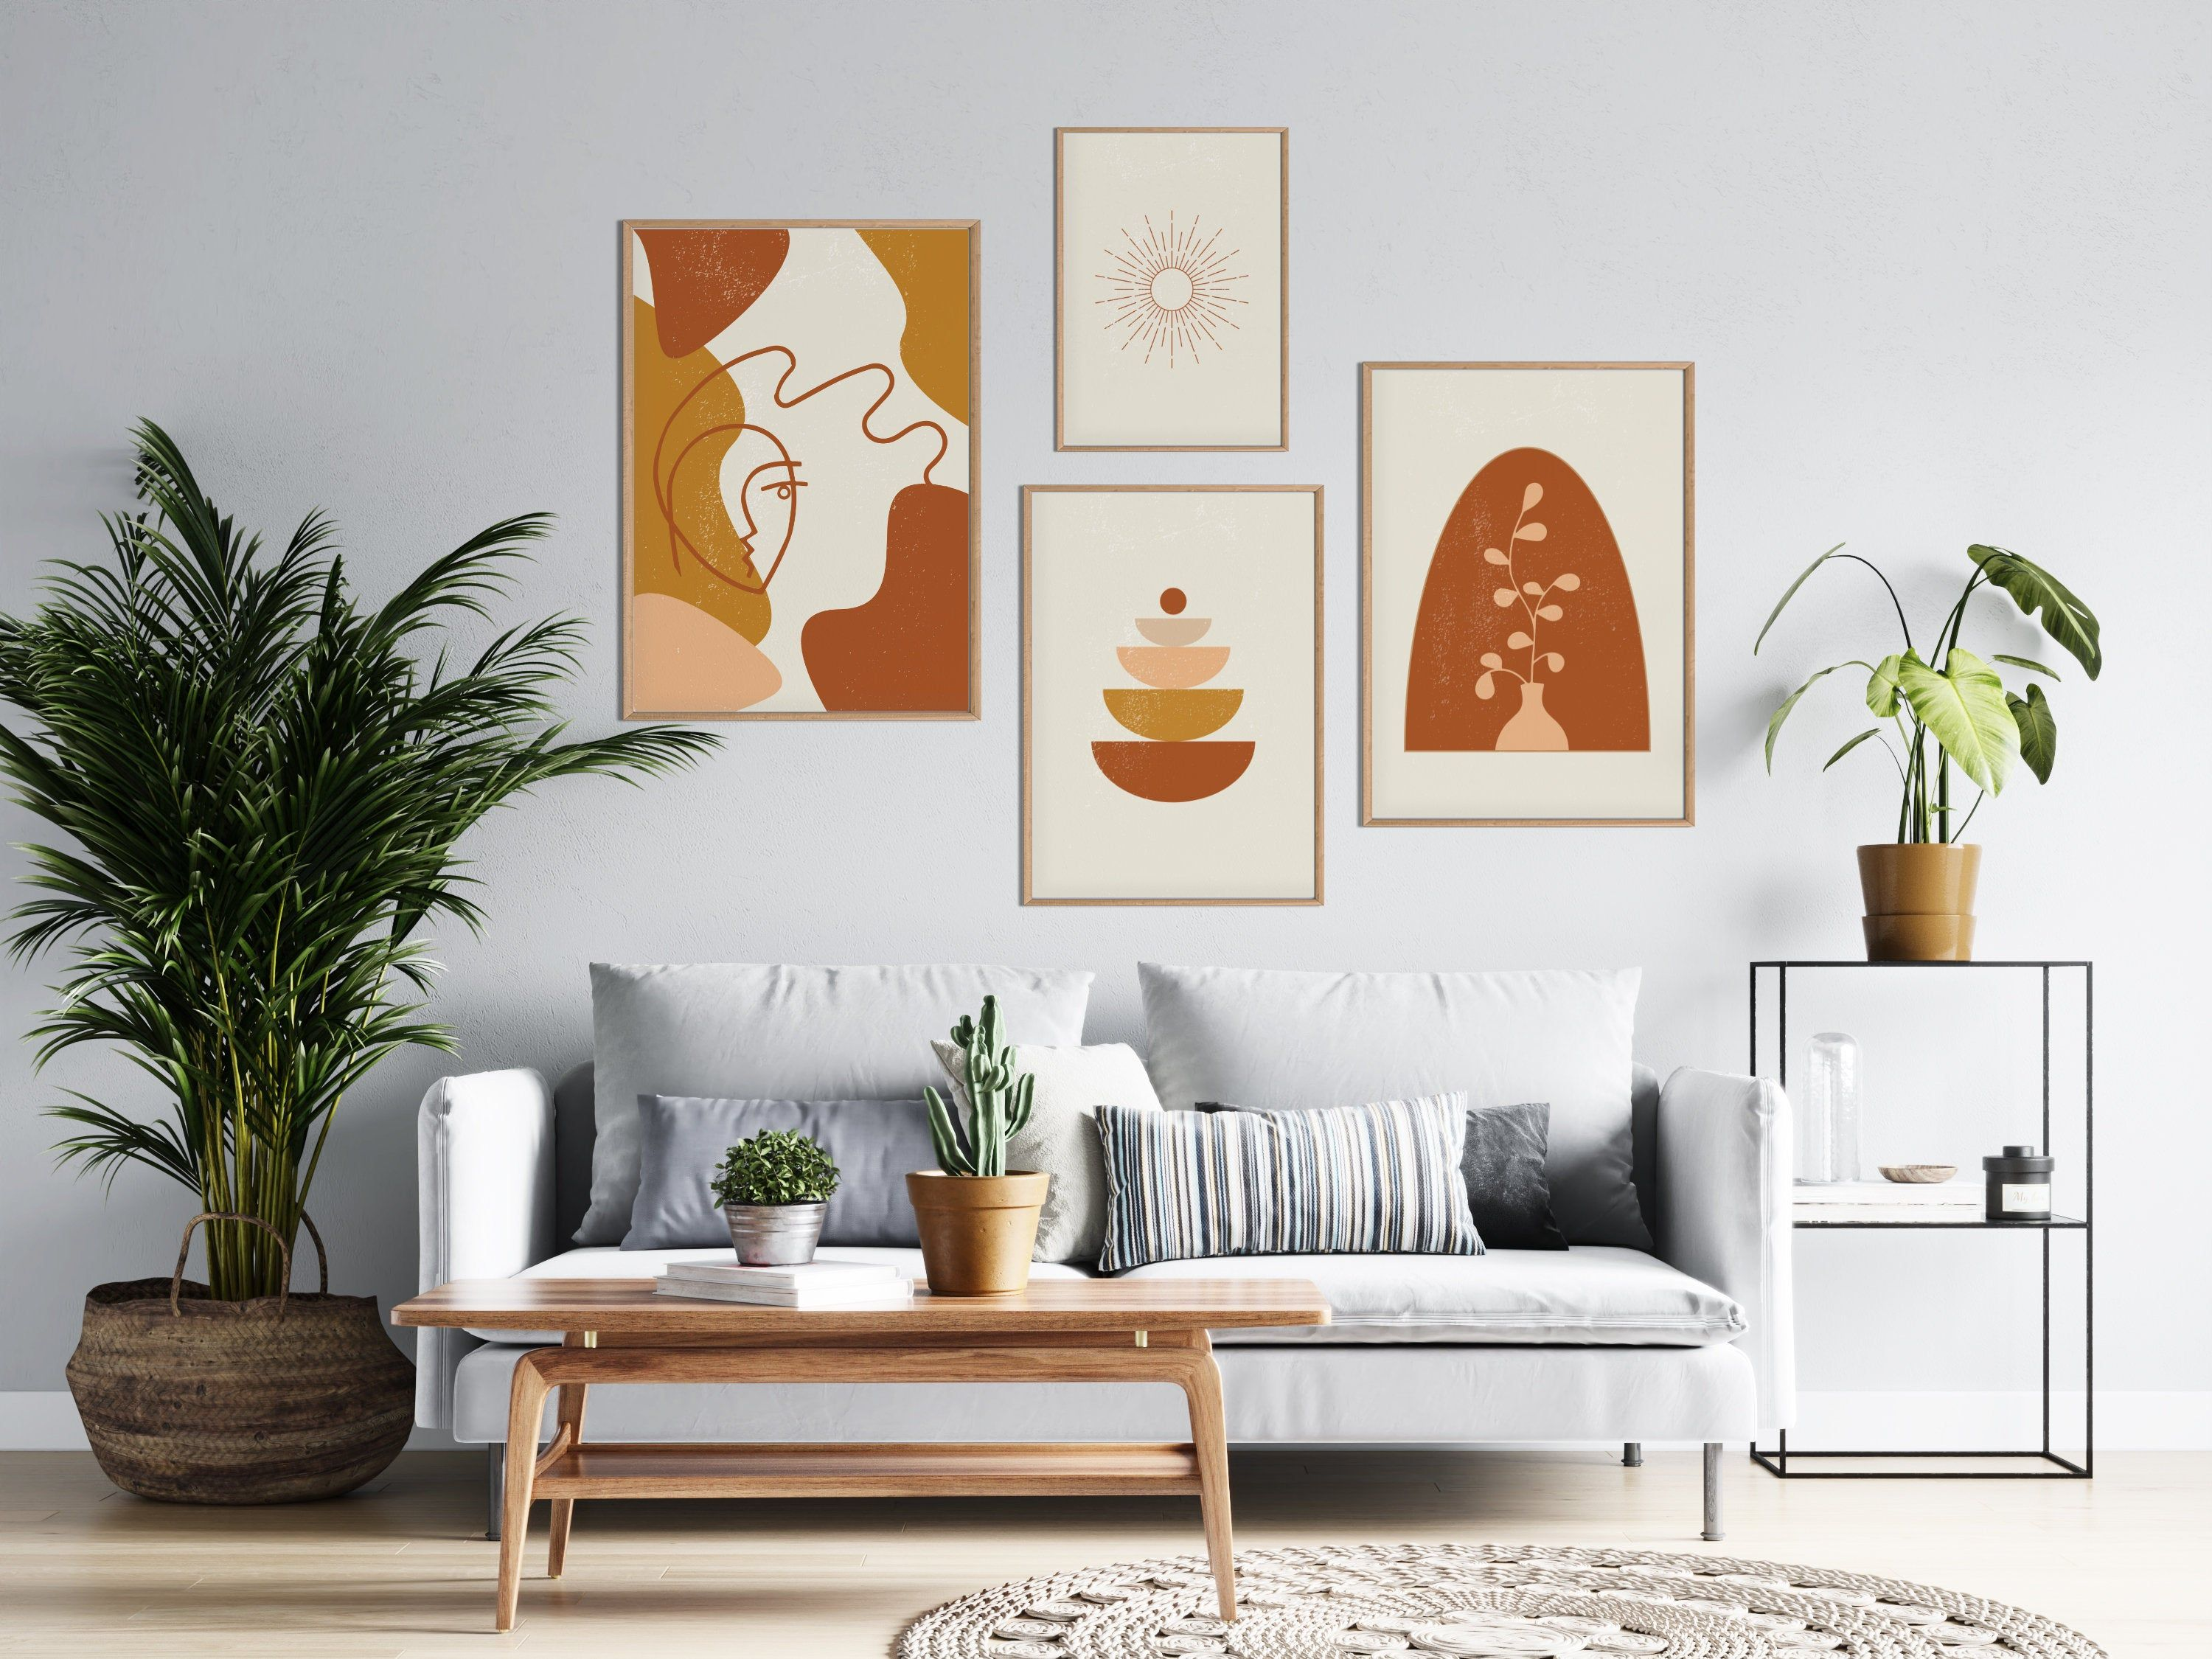 Set Of 4 Prints Gallery Wall Art Set Of Four Abstract Posters Art Prints Bundle Line Art Gallery Wall Printable Modern Art Poster Bundle Gallery Wall Printables Gallery Wall Modern Art Printables